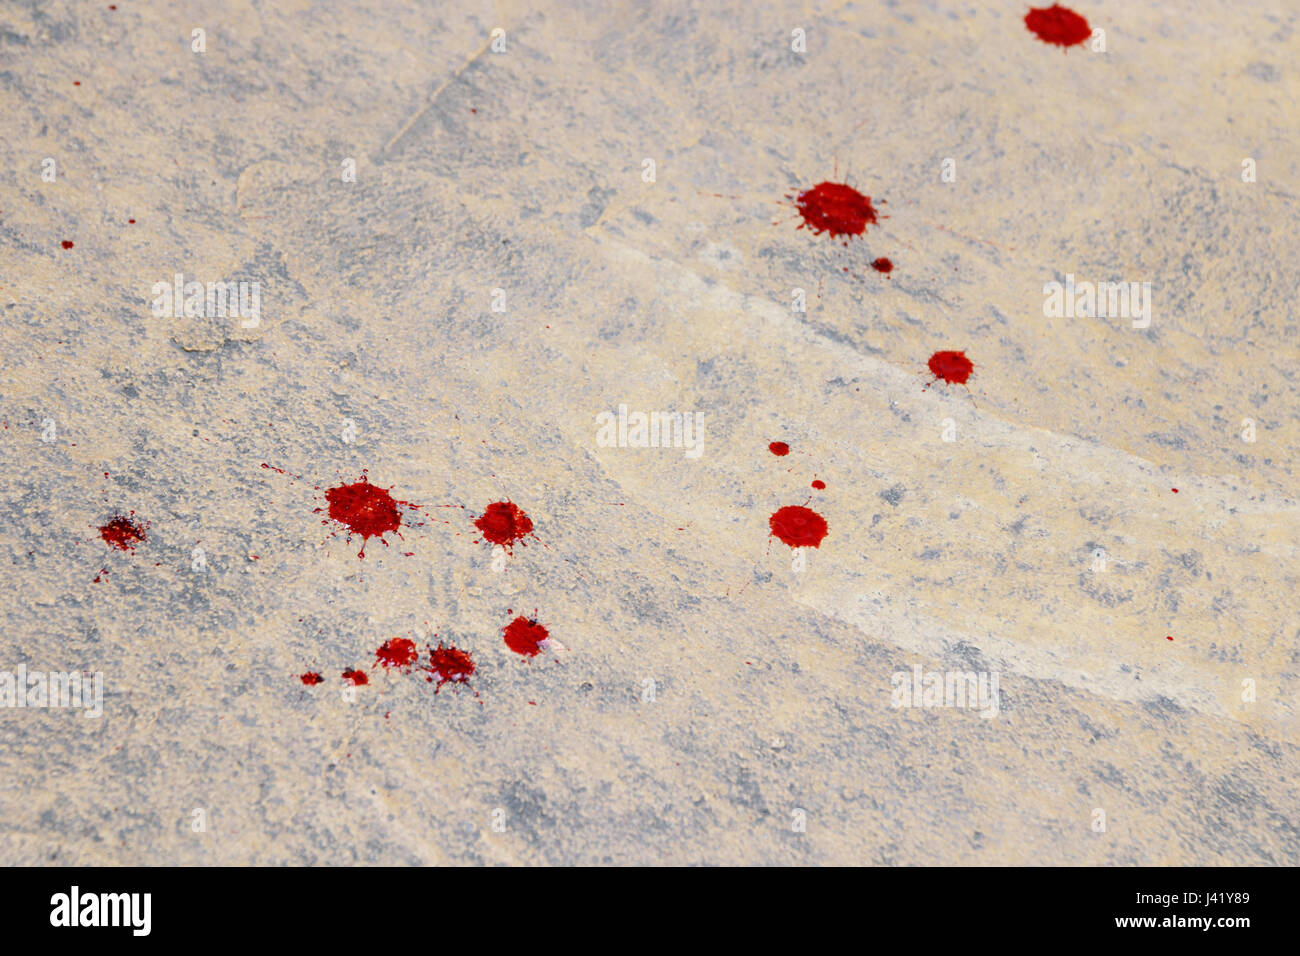 splatters of fresh human bright red blood on a concrete surface